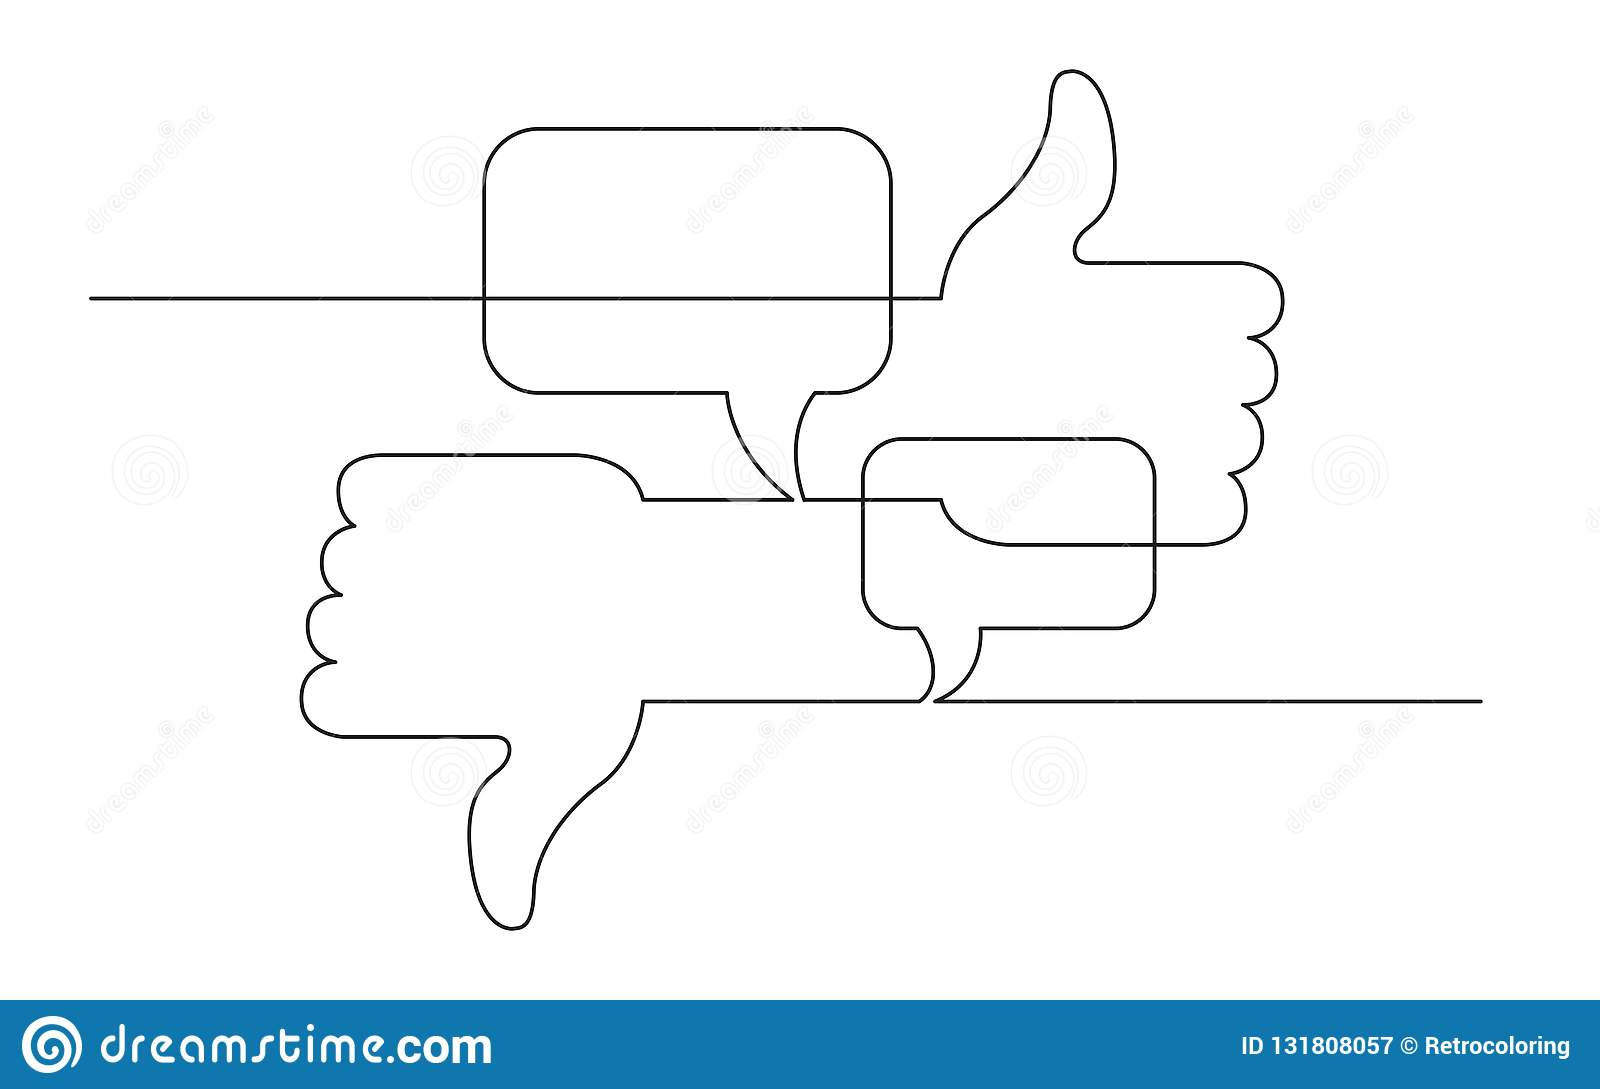 Continuous line concept sketch drawing of social media like, dislike and opinions symbols